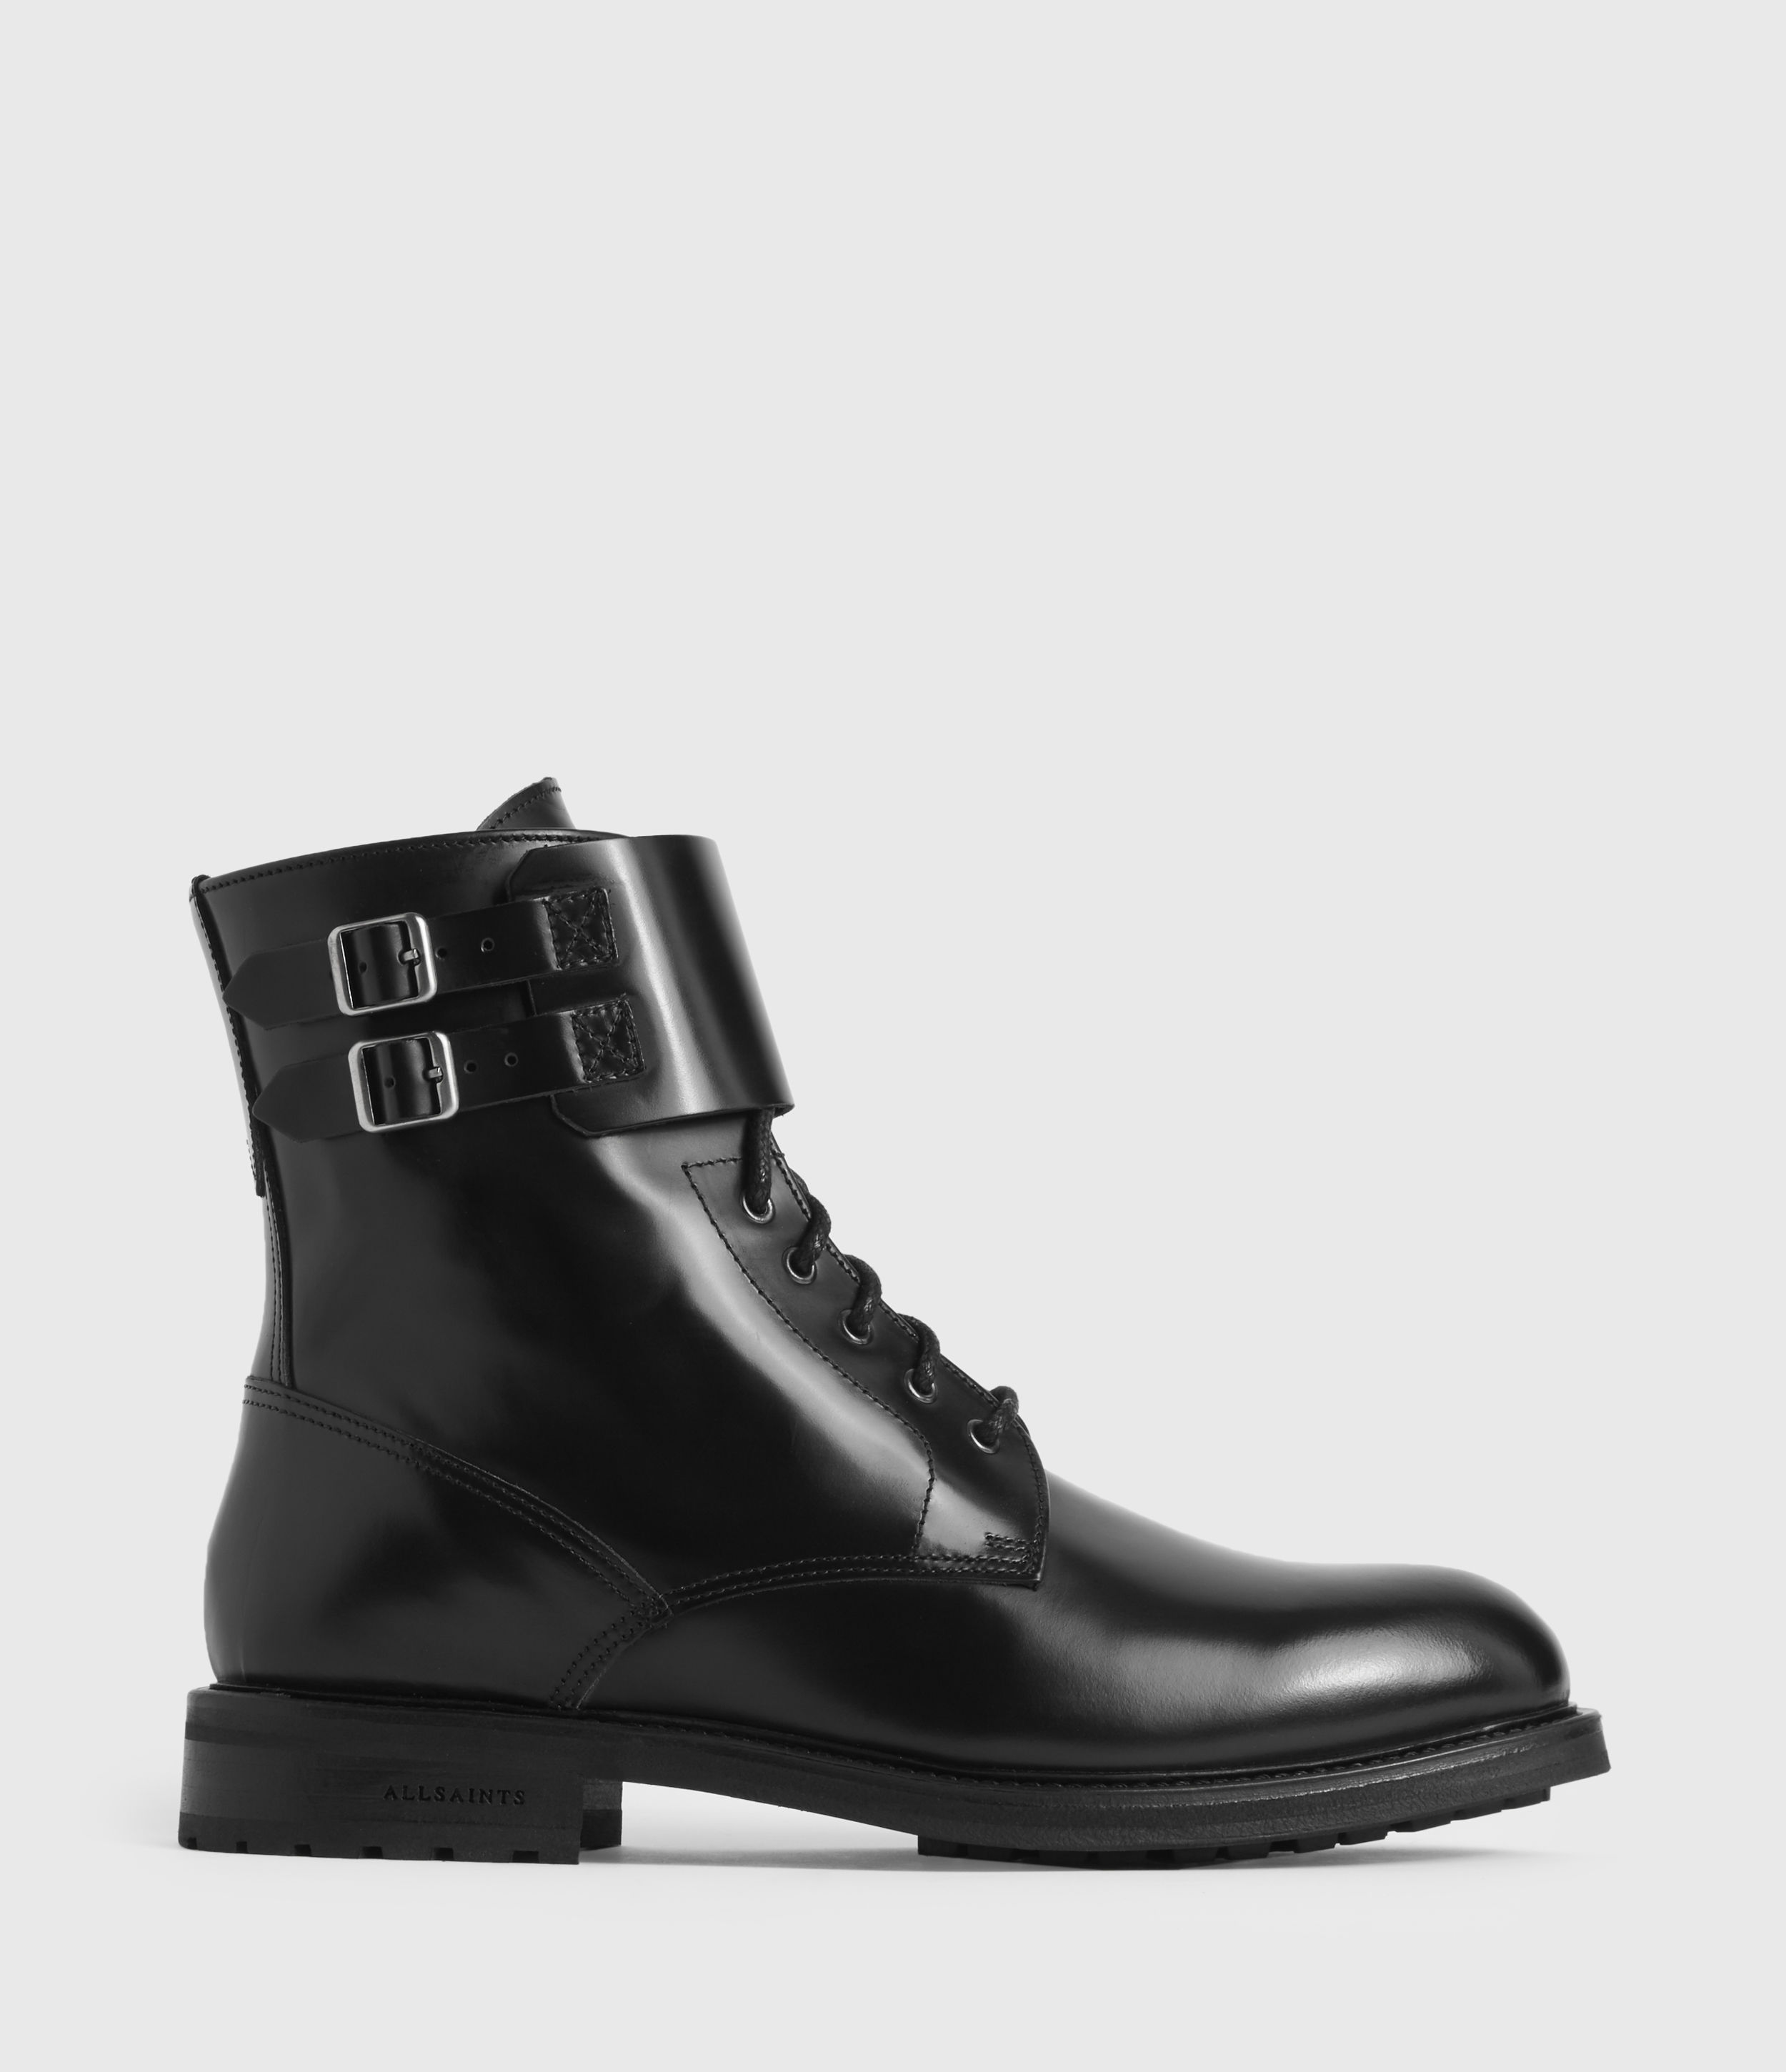 AllSaints Women's Smooth Leather Military-Inspired Brigade Boots, Black, Size: UK 4/US 6/EU 37